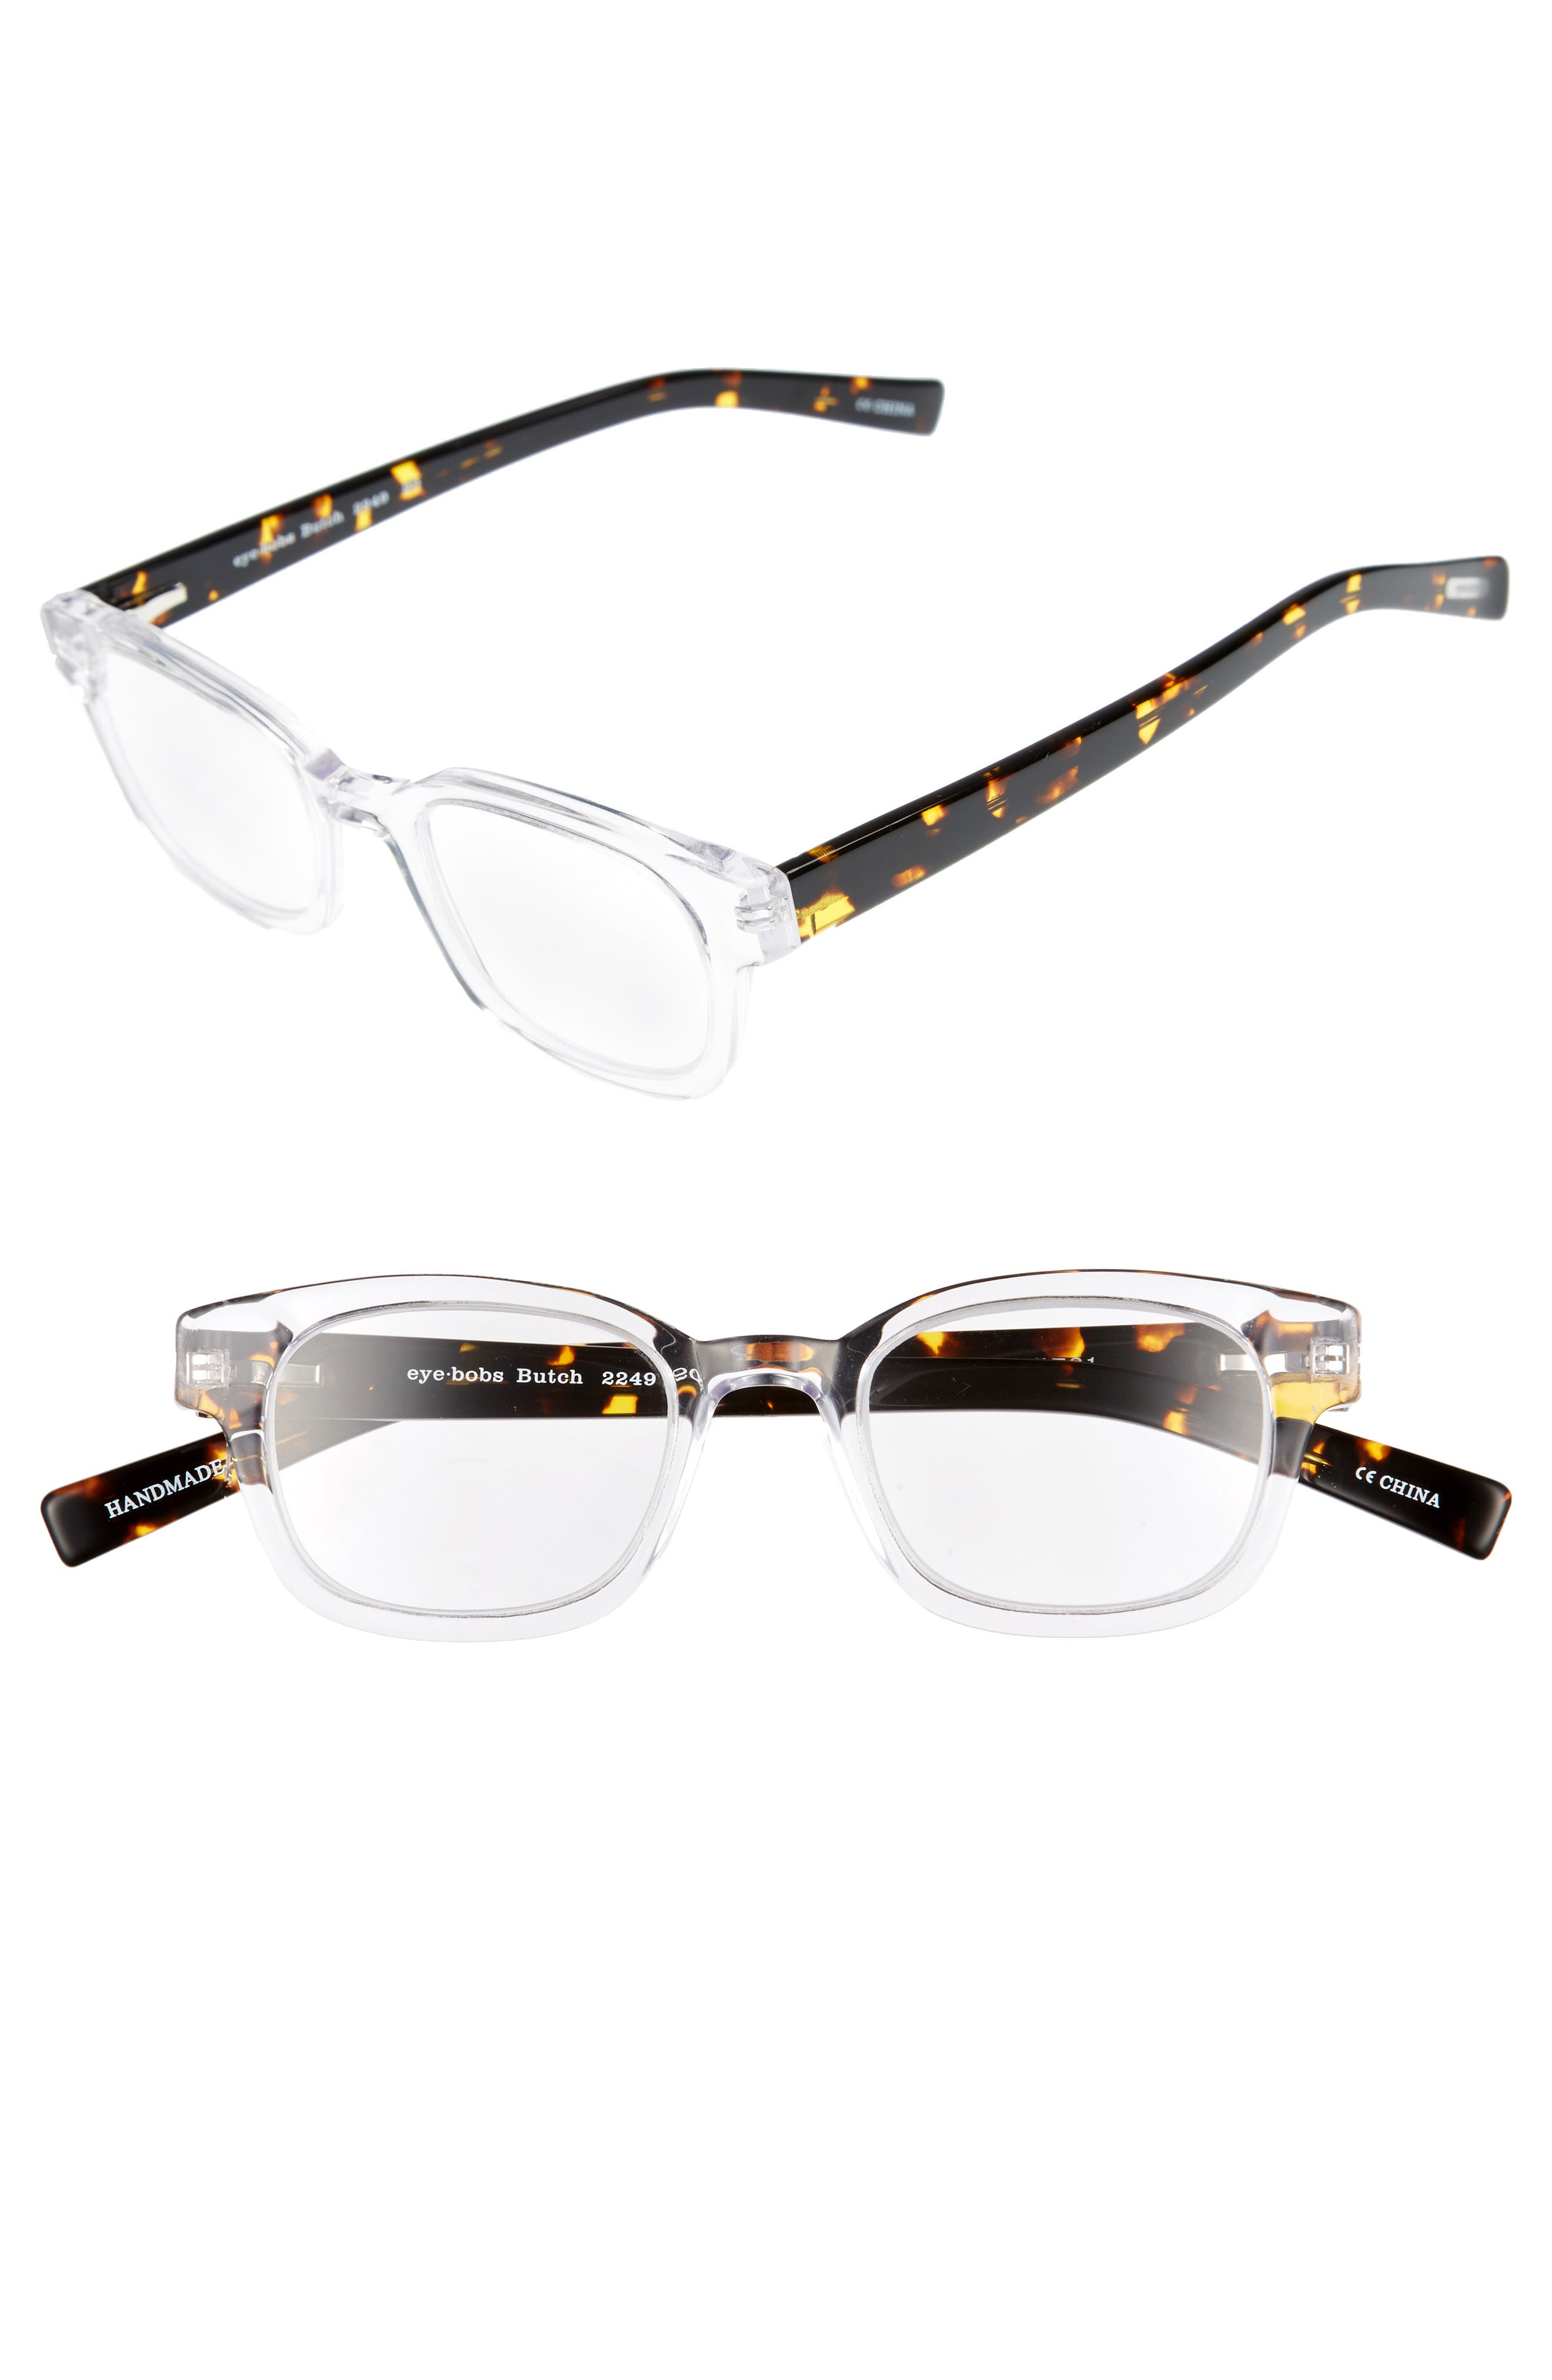 Butch 45mm Reading Glasses,                             Main thumbnail 1, color,                             CRYSTAL WITH TORTOISE